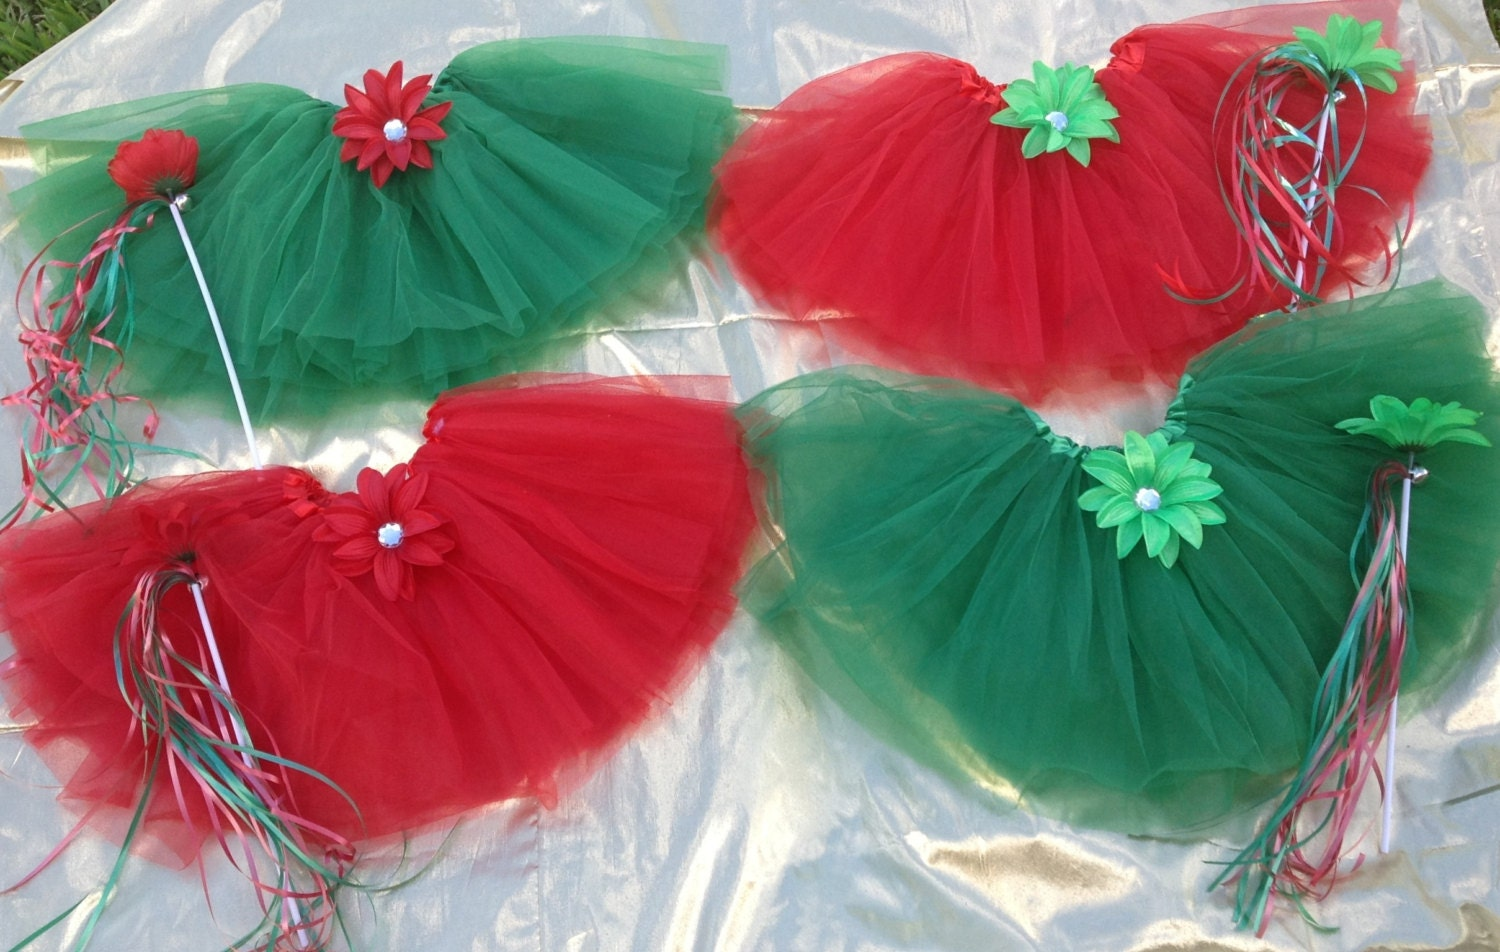 Ideas For Christmas Party Favors Part - 42: Christmas Fairy Princess Tutu And Christmas Wands, Christmas Party Favors,  Red Tutu, Green